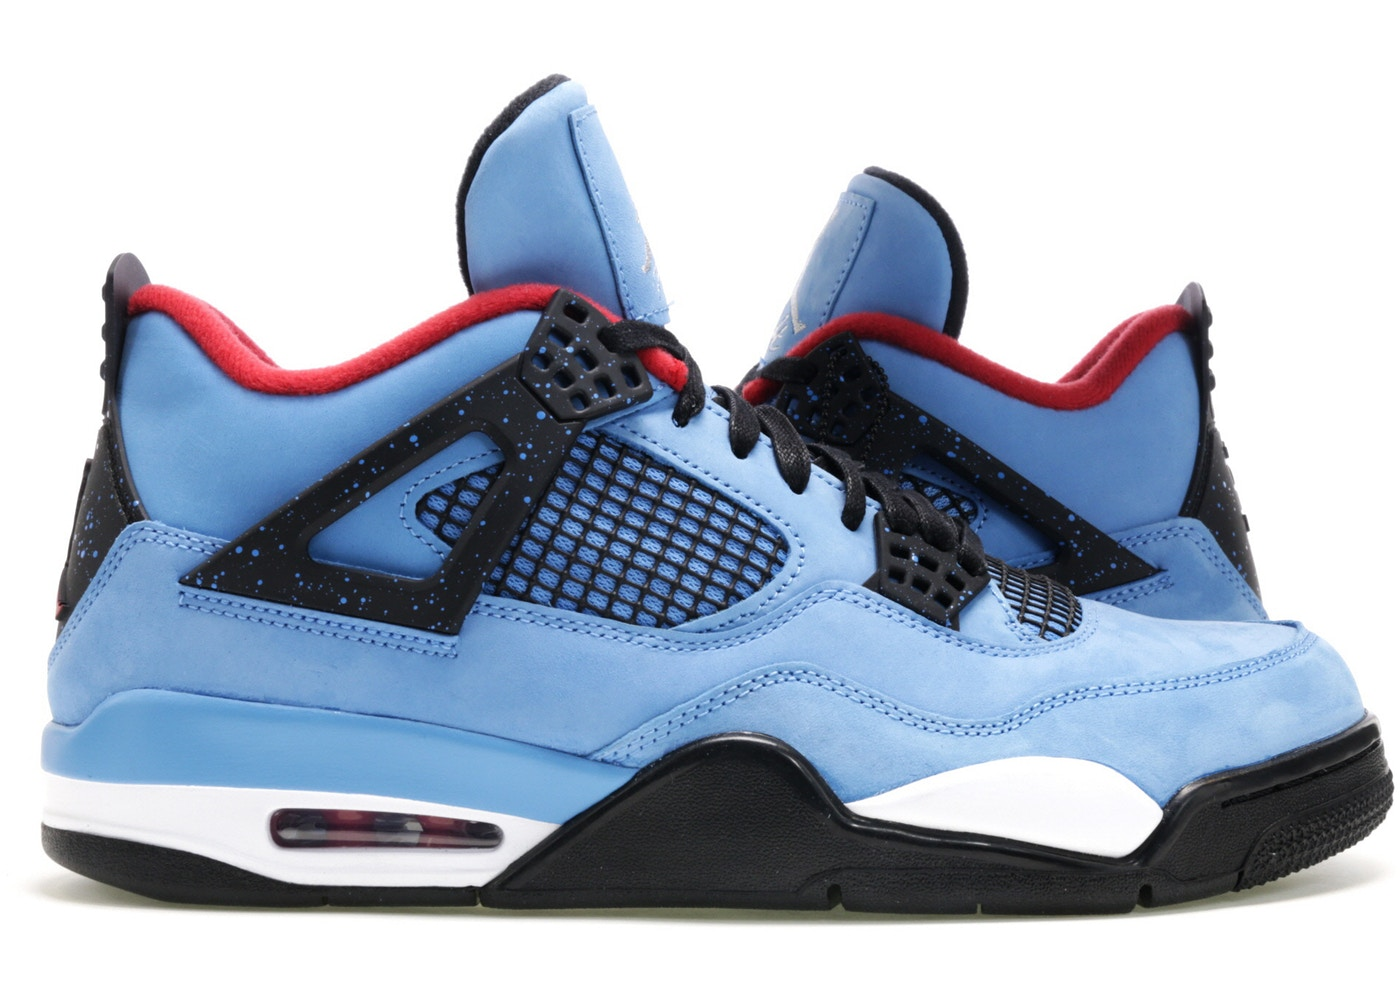 4499a458545 Those interested can buy them online today at StockX. Got a pair to sell   List the Travis Scott Air Jordan 4 on the StockX marketplace now.